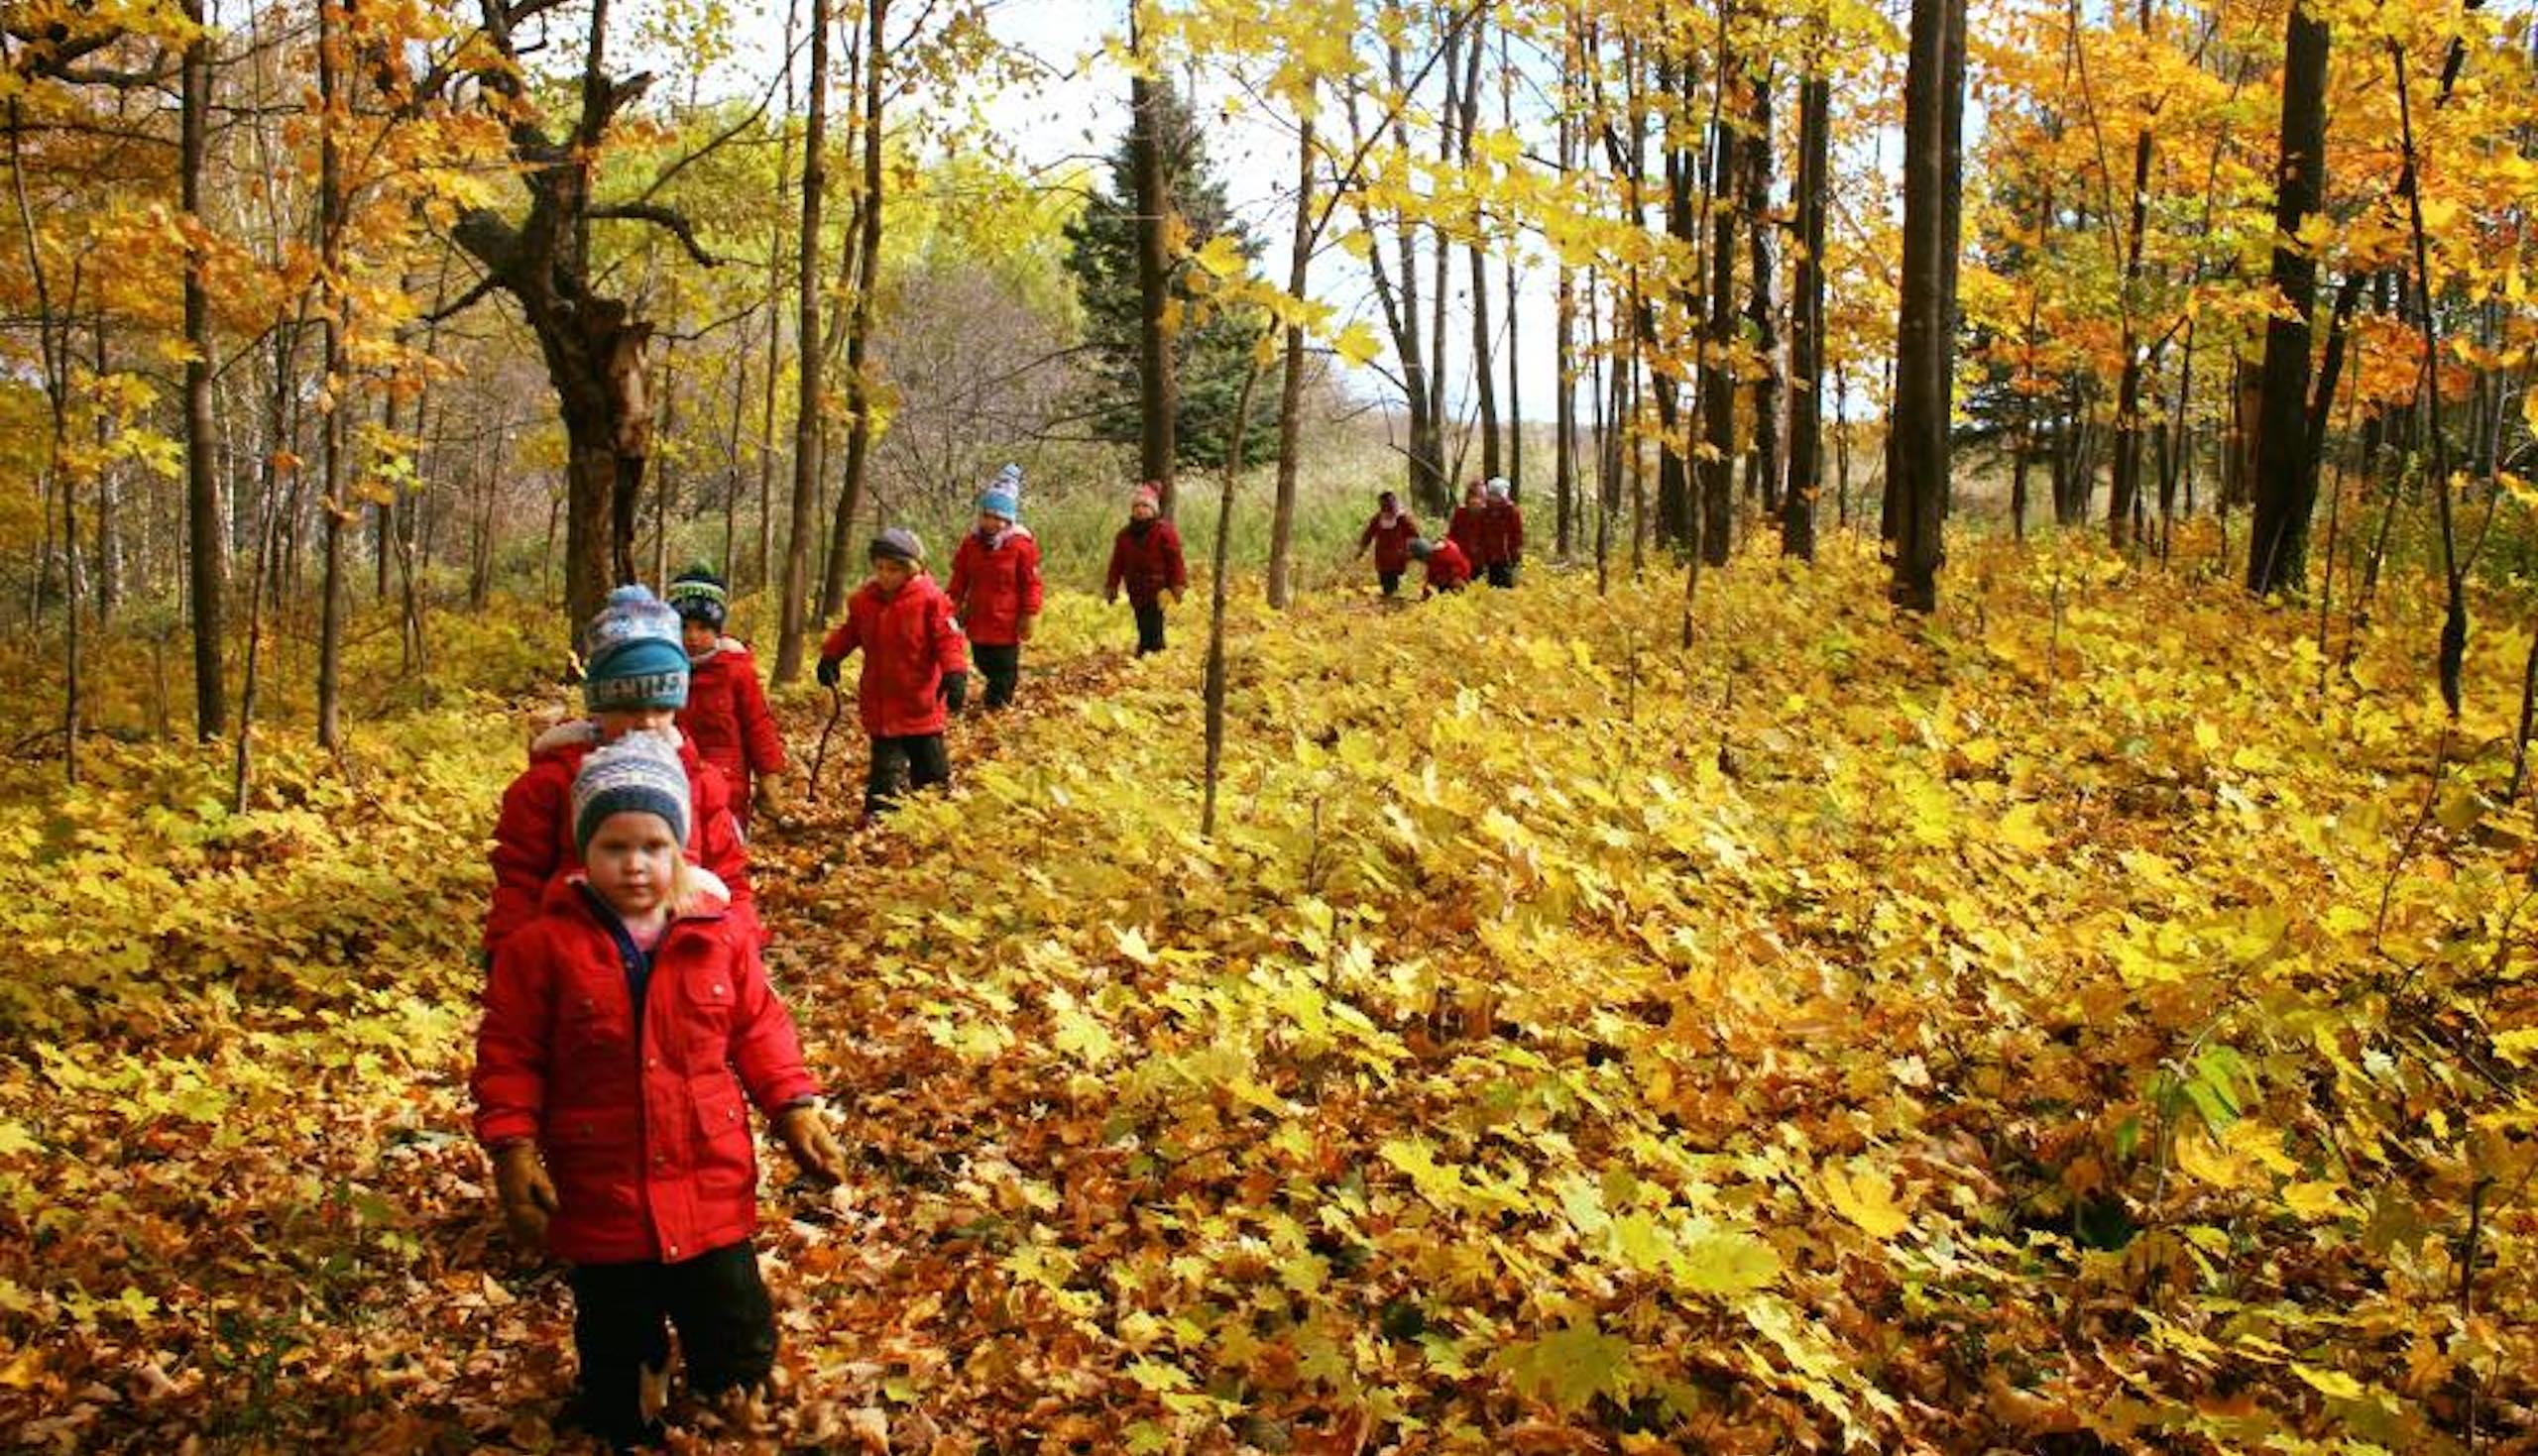 Children walking in the woods with autumn leaves